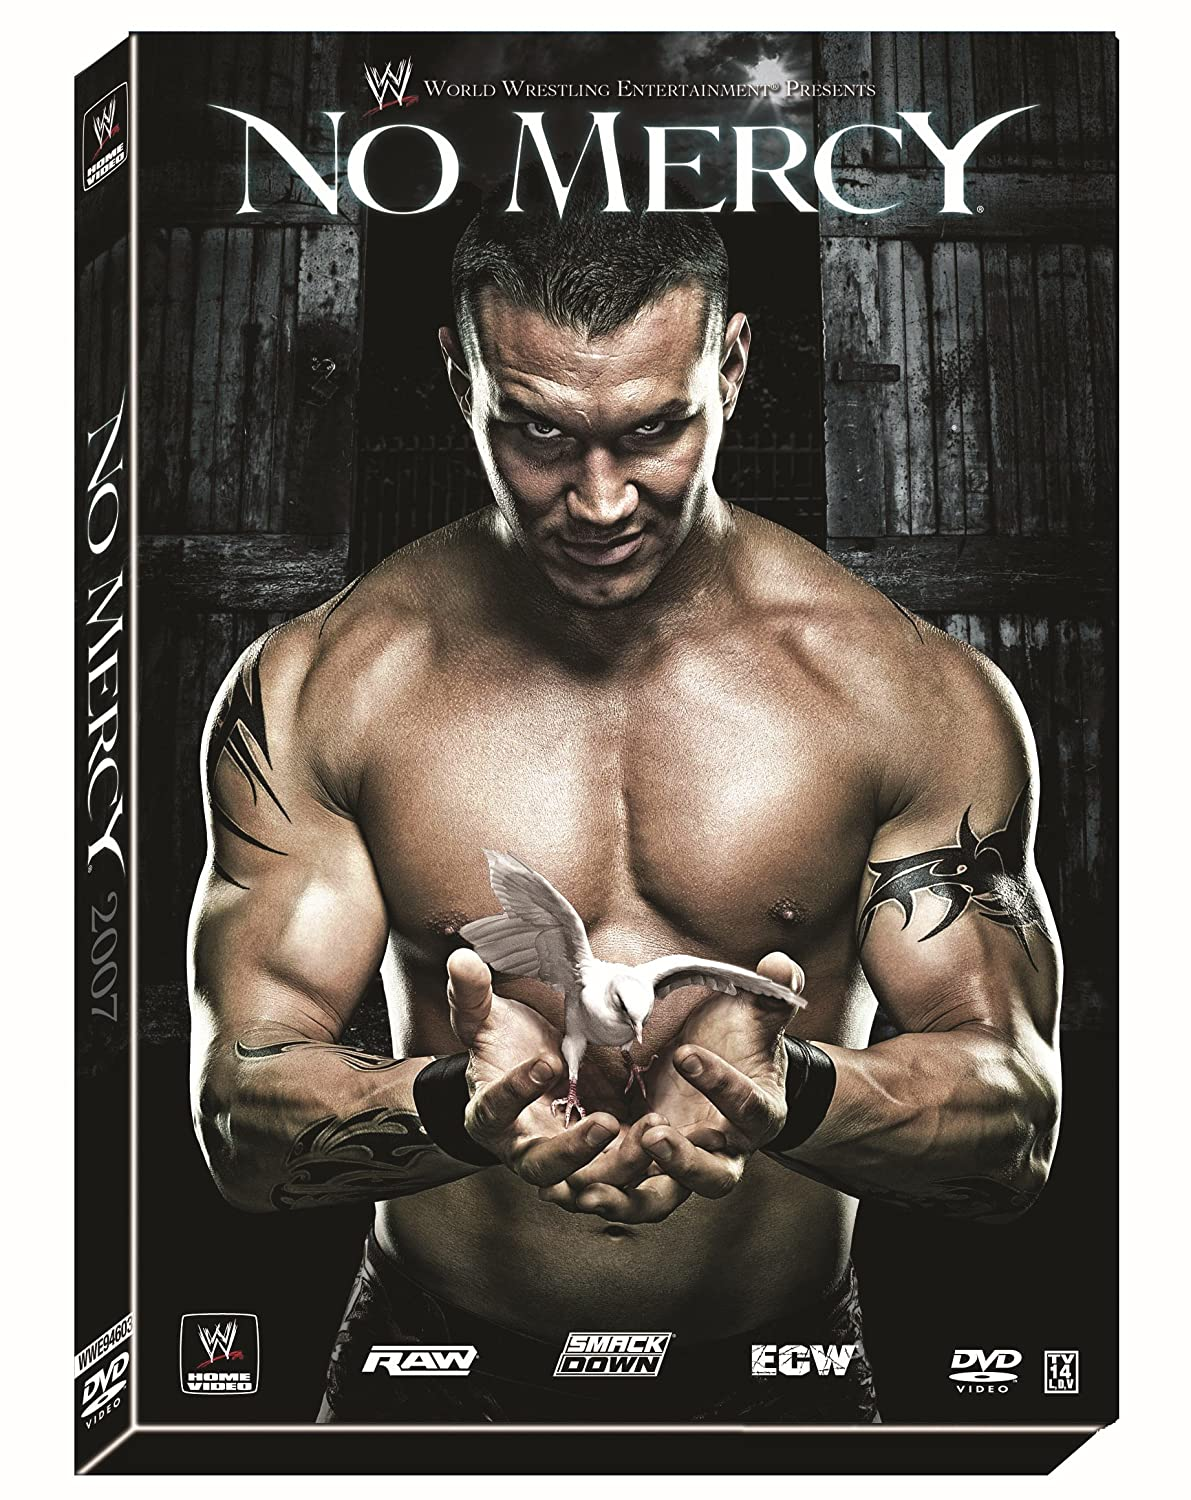 Amazon com: WWE No Mercy 2007: Triple H, Randy Orton, Great